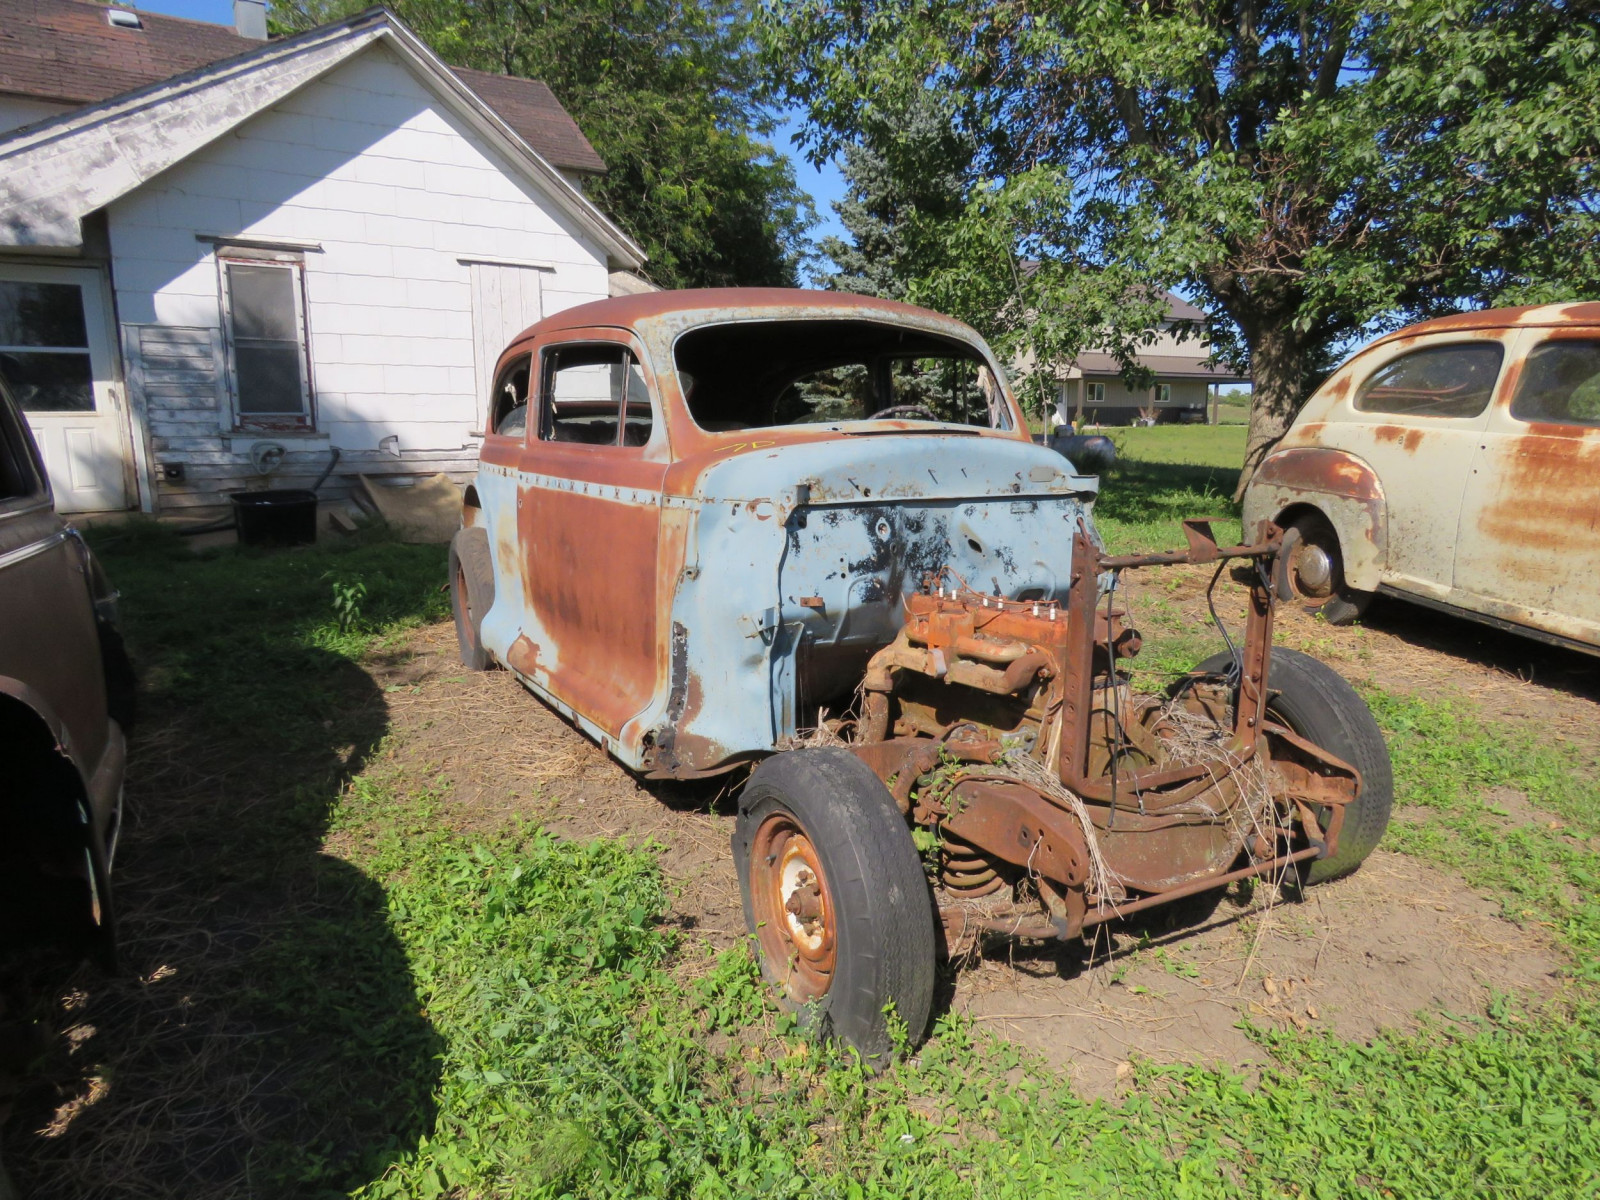 1940's Chevrolet 2dr Sedan for project or parts - Image 1